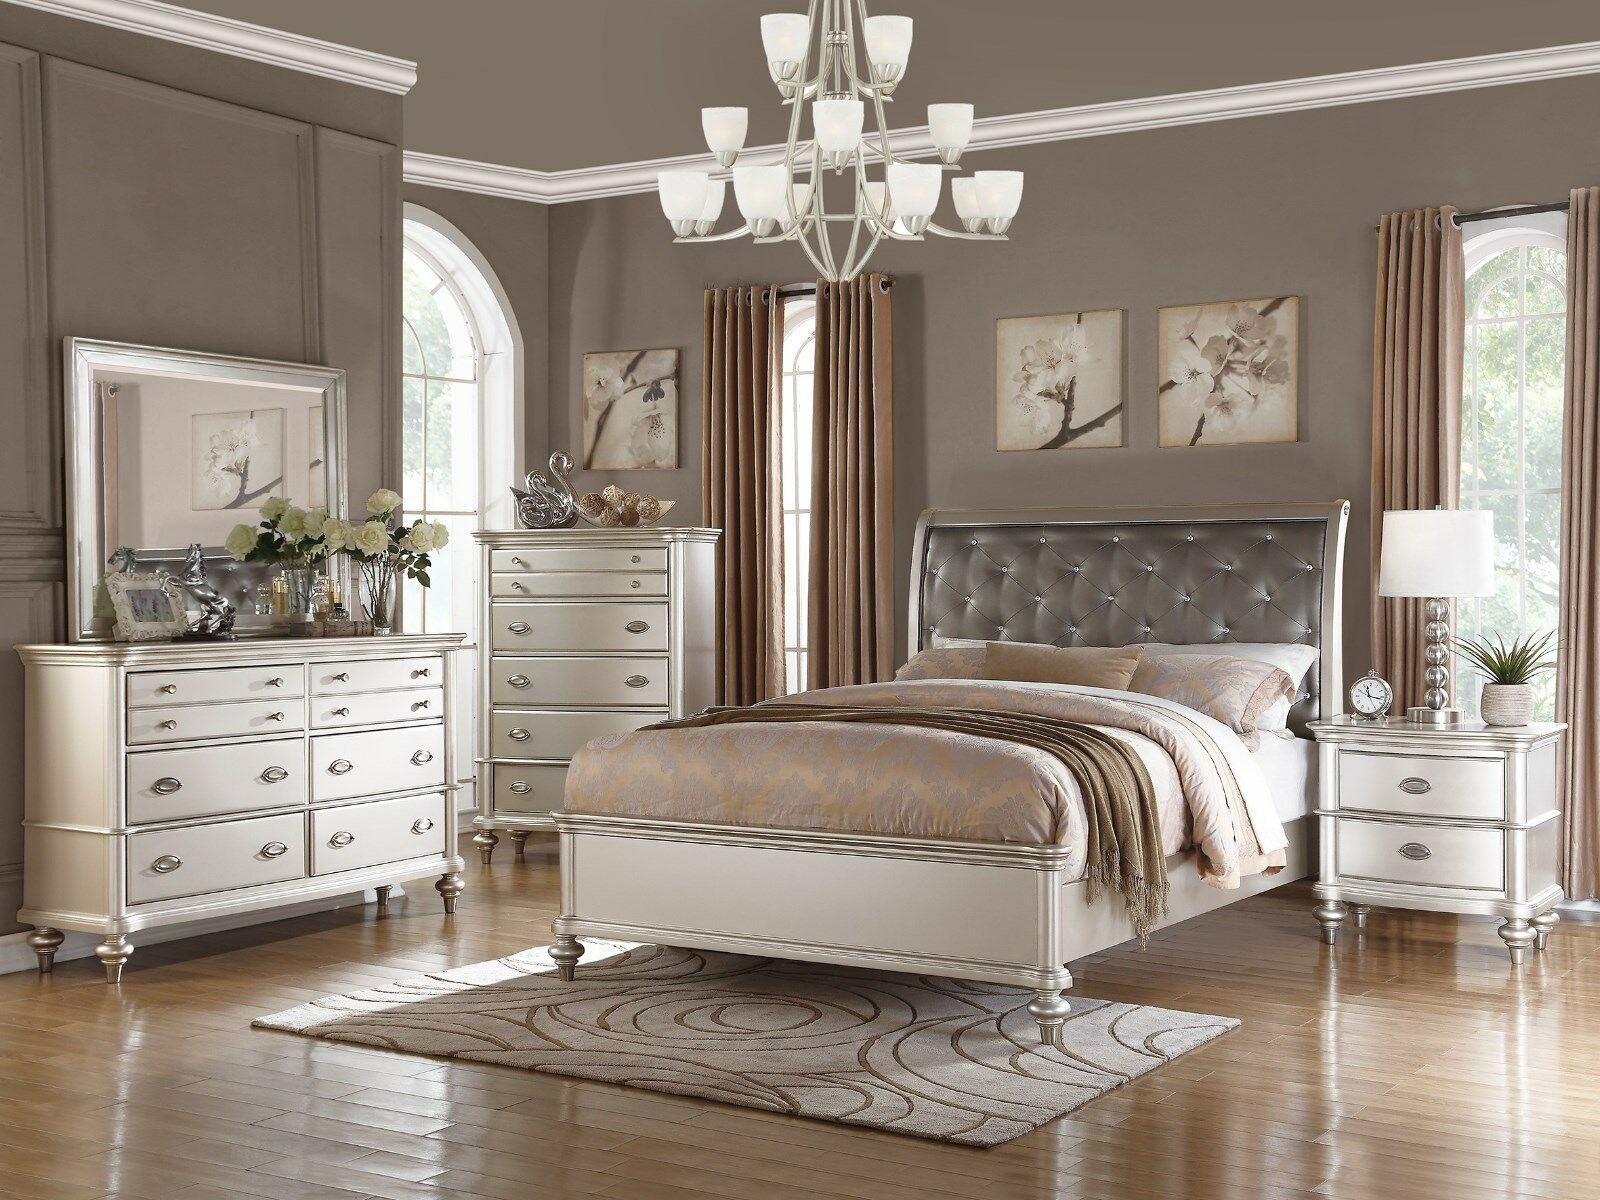 Details About 6pc Zurich Modern Transitional Metallic Silver Wood Queen King Bedroom Set inside 10 Smart Concepts of How to Make Modern Bedroom Sets King